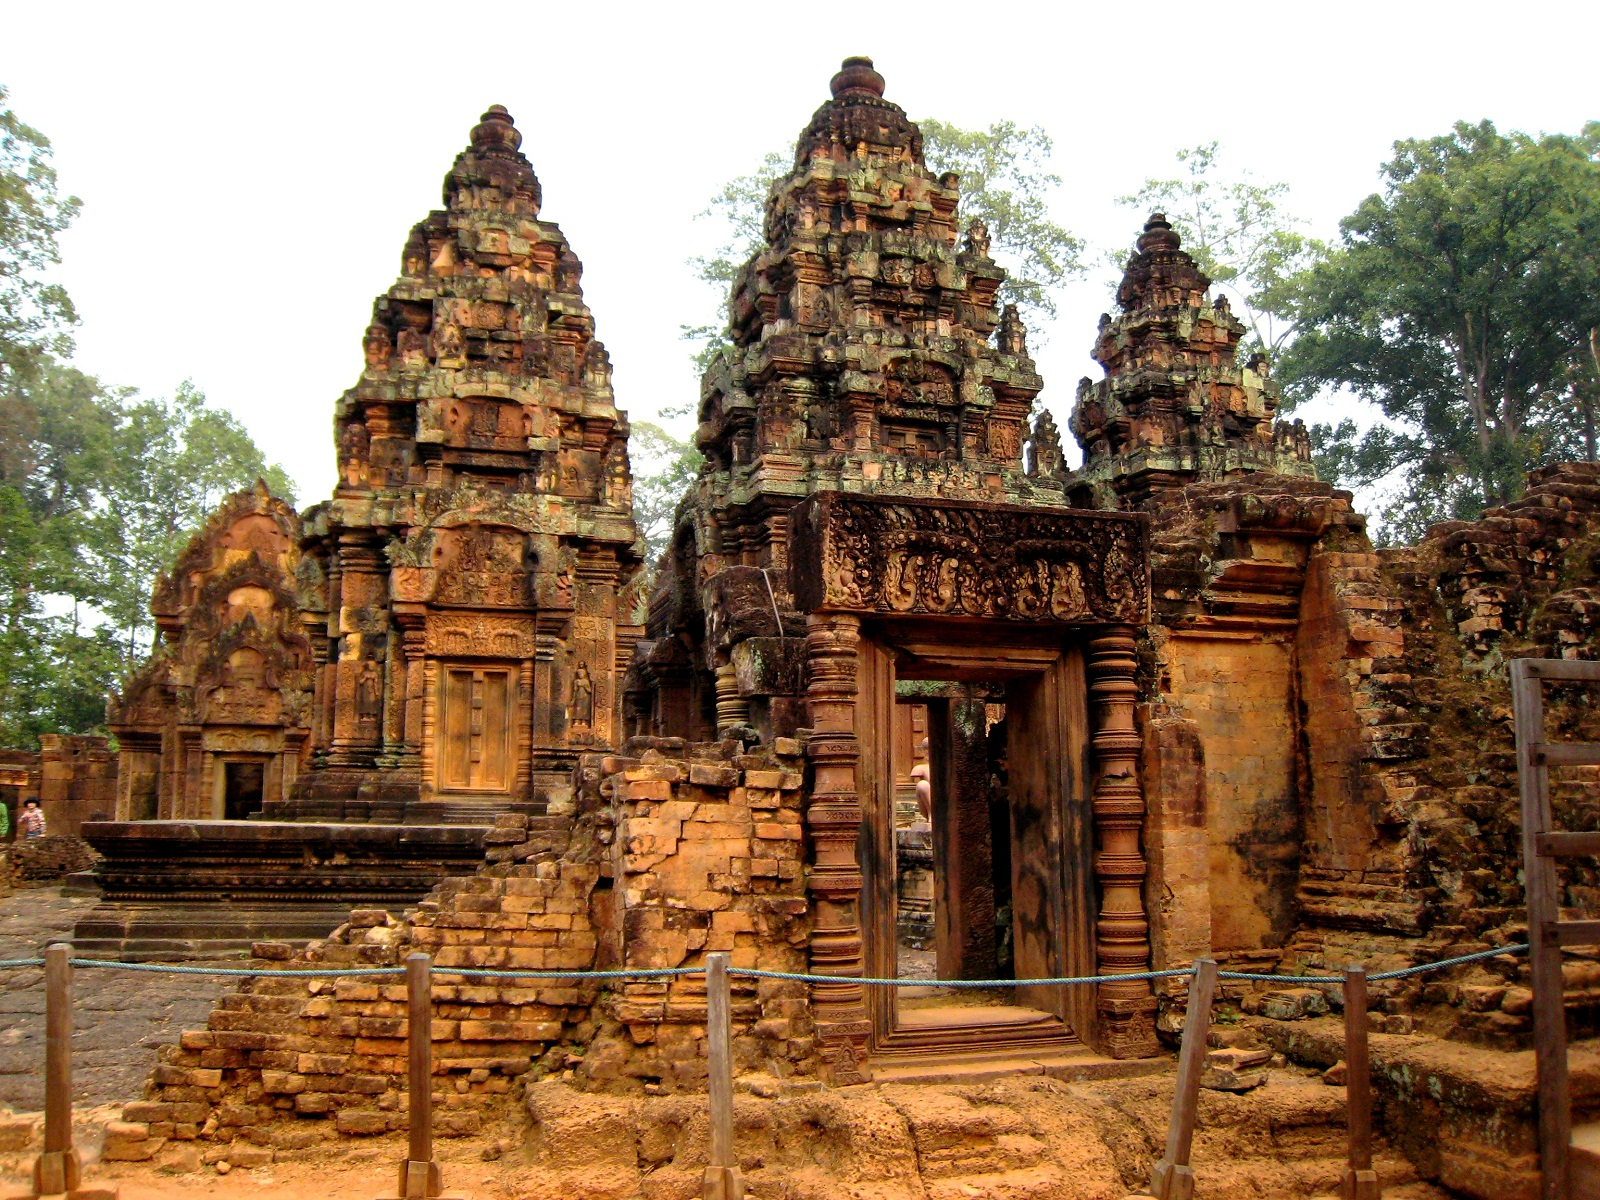 Banteay Srei, Angkor, Cambodia, Overview